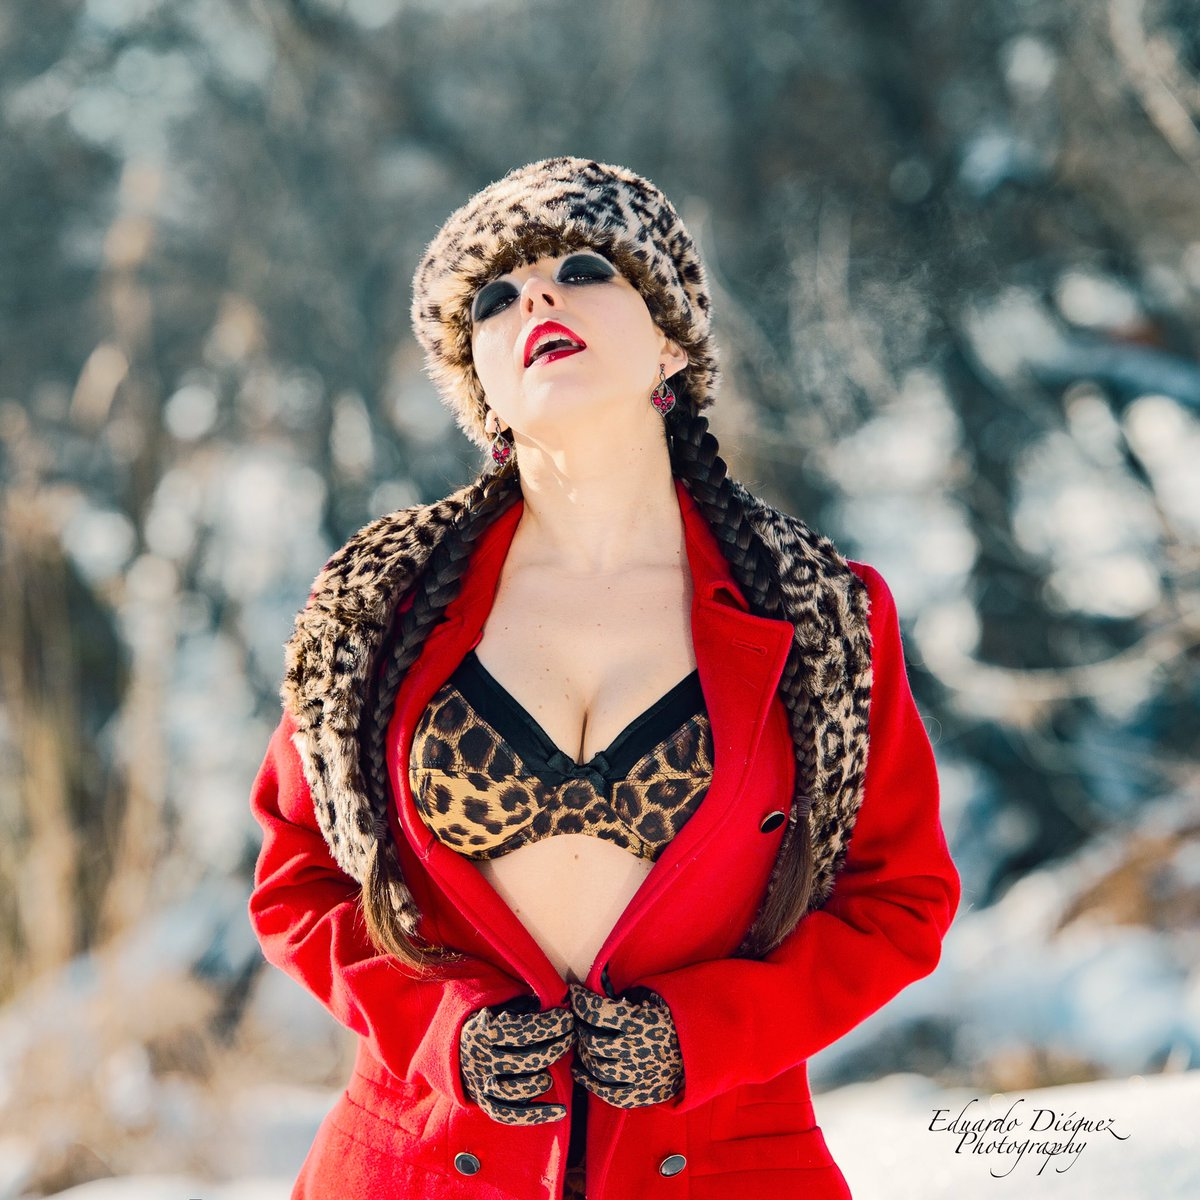 Laura is the new Bond girl. 'The spy that came from the cold...'  Love my work so much.... Shooting Filomena Alcala de Henares. Asst: BELEN DIAZ #stormy #Filomena #borrasca #snow #bondgirl #spain #sexy #felizjueves #fyp #parati #nieve #red #spain #ad #parati #leopardo #landscape